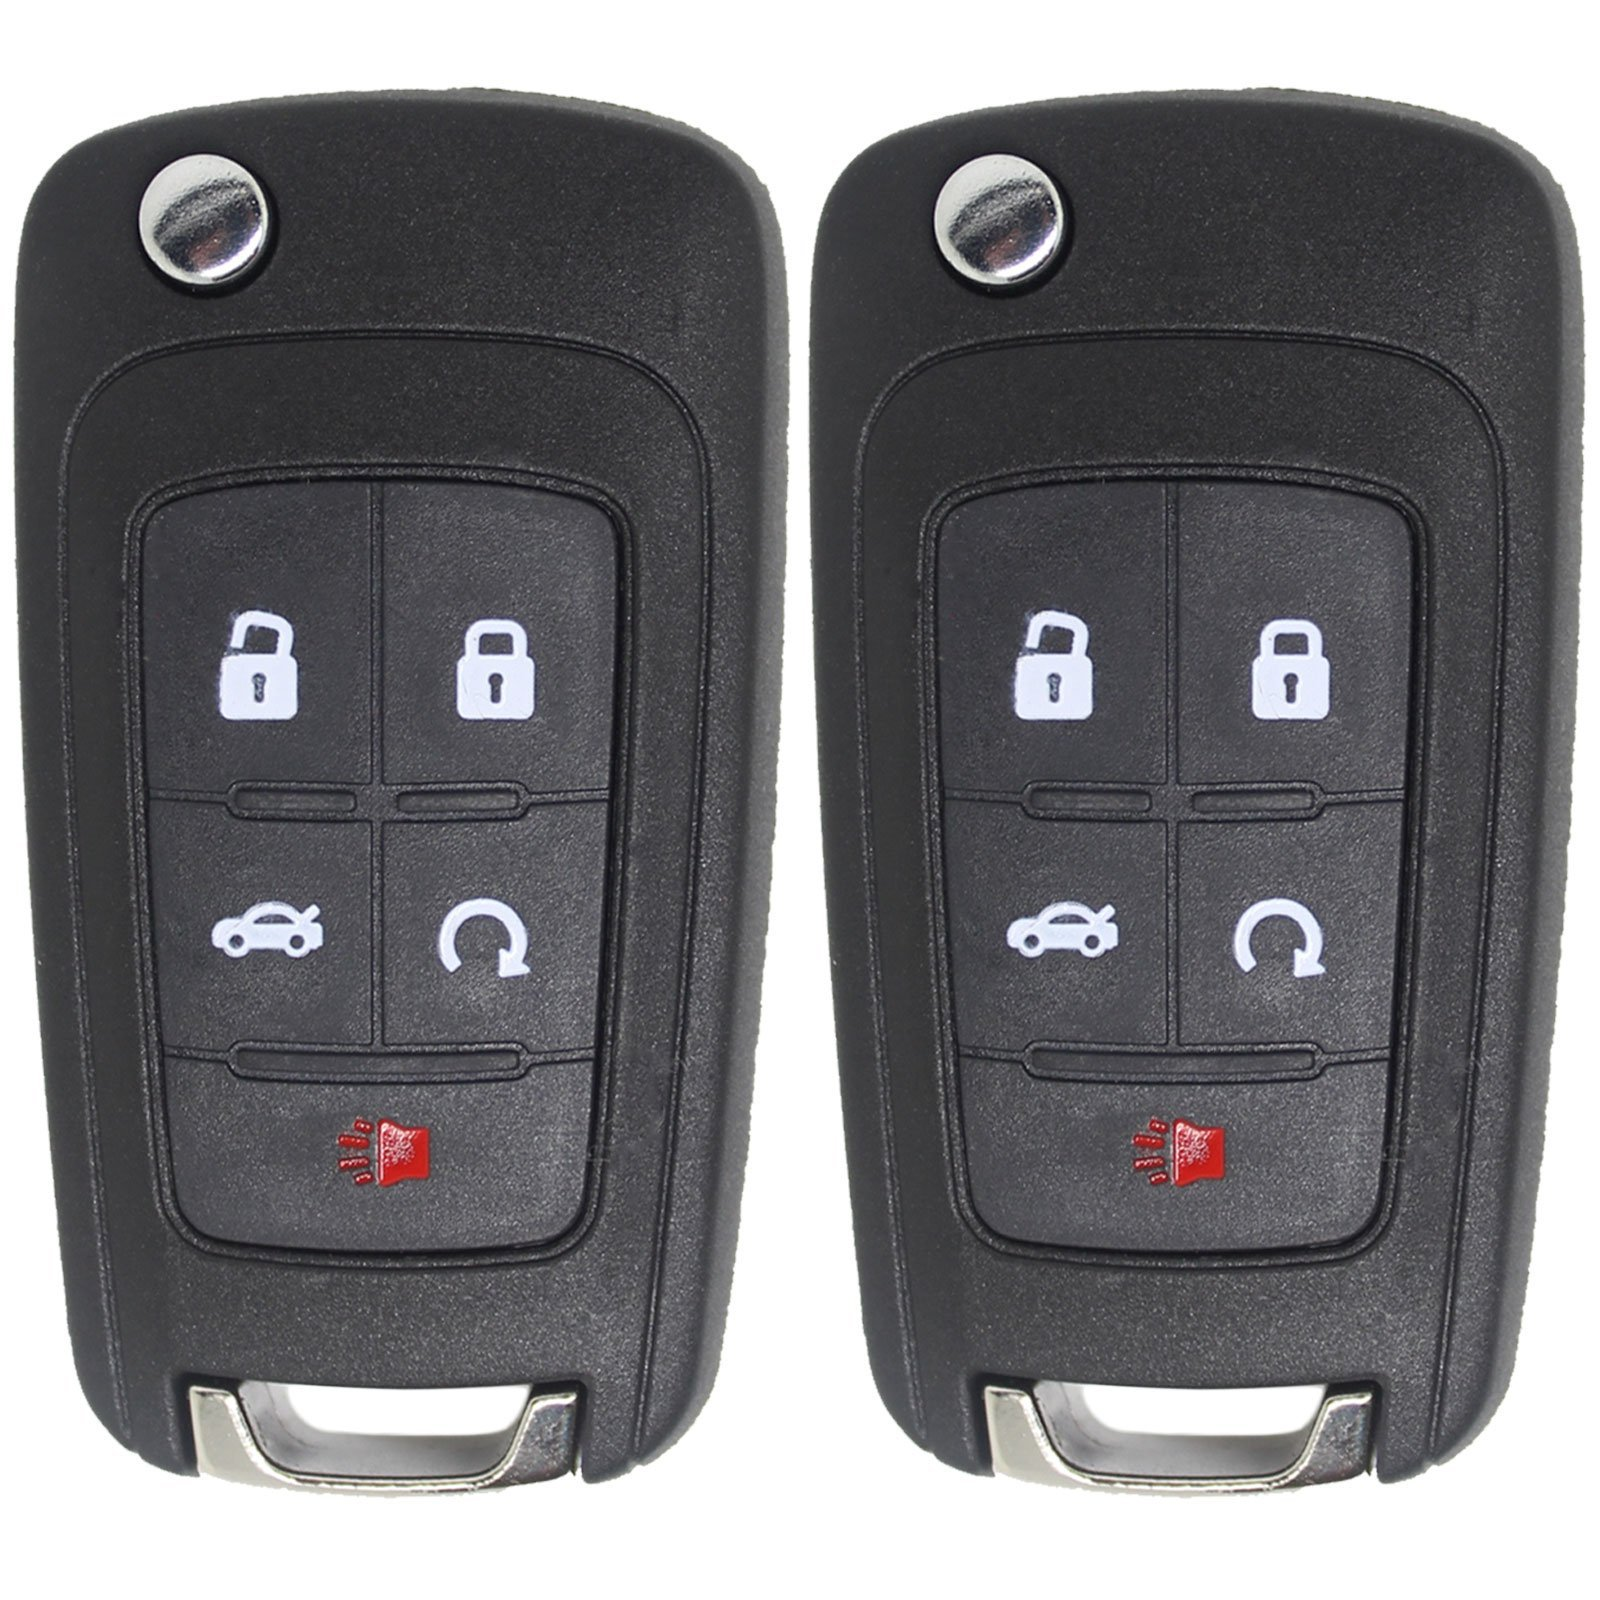 Keyless2Go New Keyless Remote 5 Button Flip Car Key Fob for Vehicles That Use FCC OHT01060512 (2 Pack) by Keyless2Go